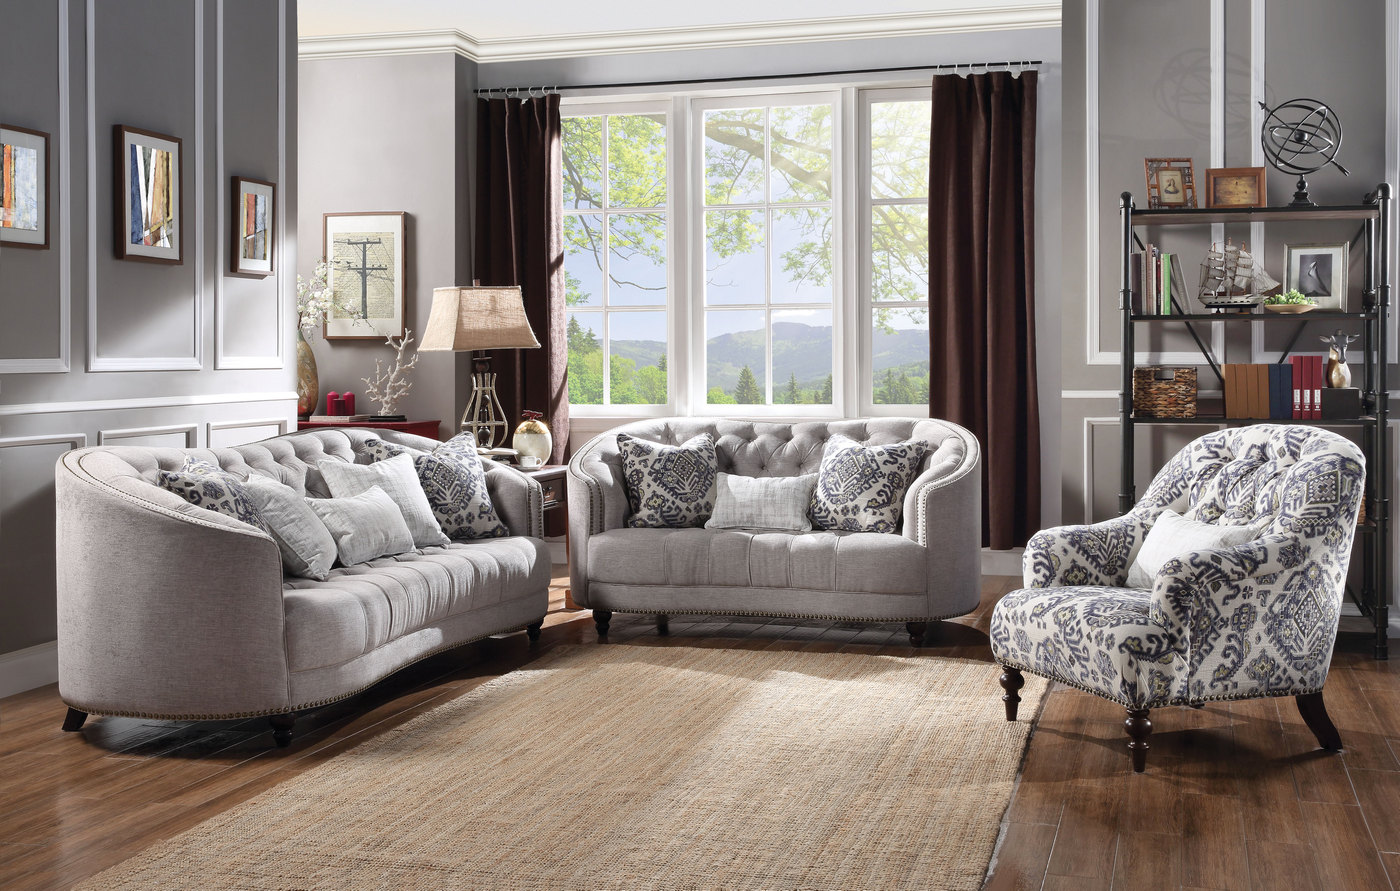 tufted sofa set standard 4 seater dimensions julia curved light gray w plush